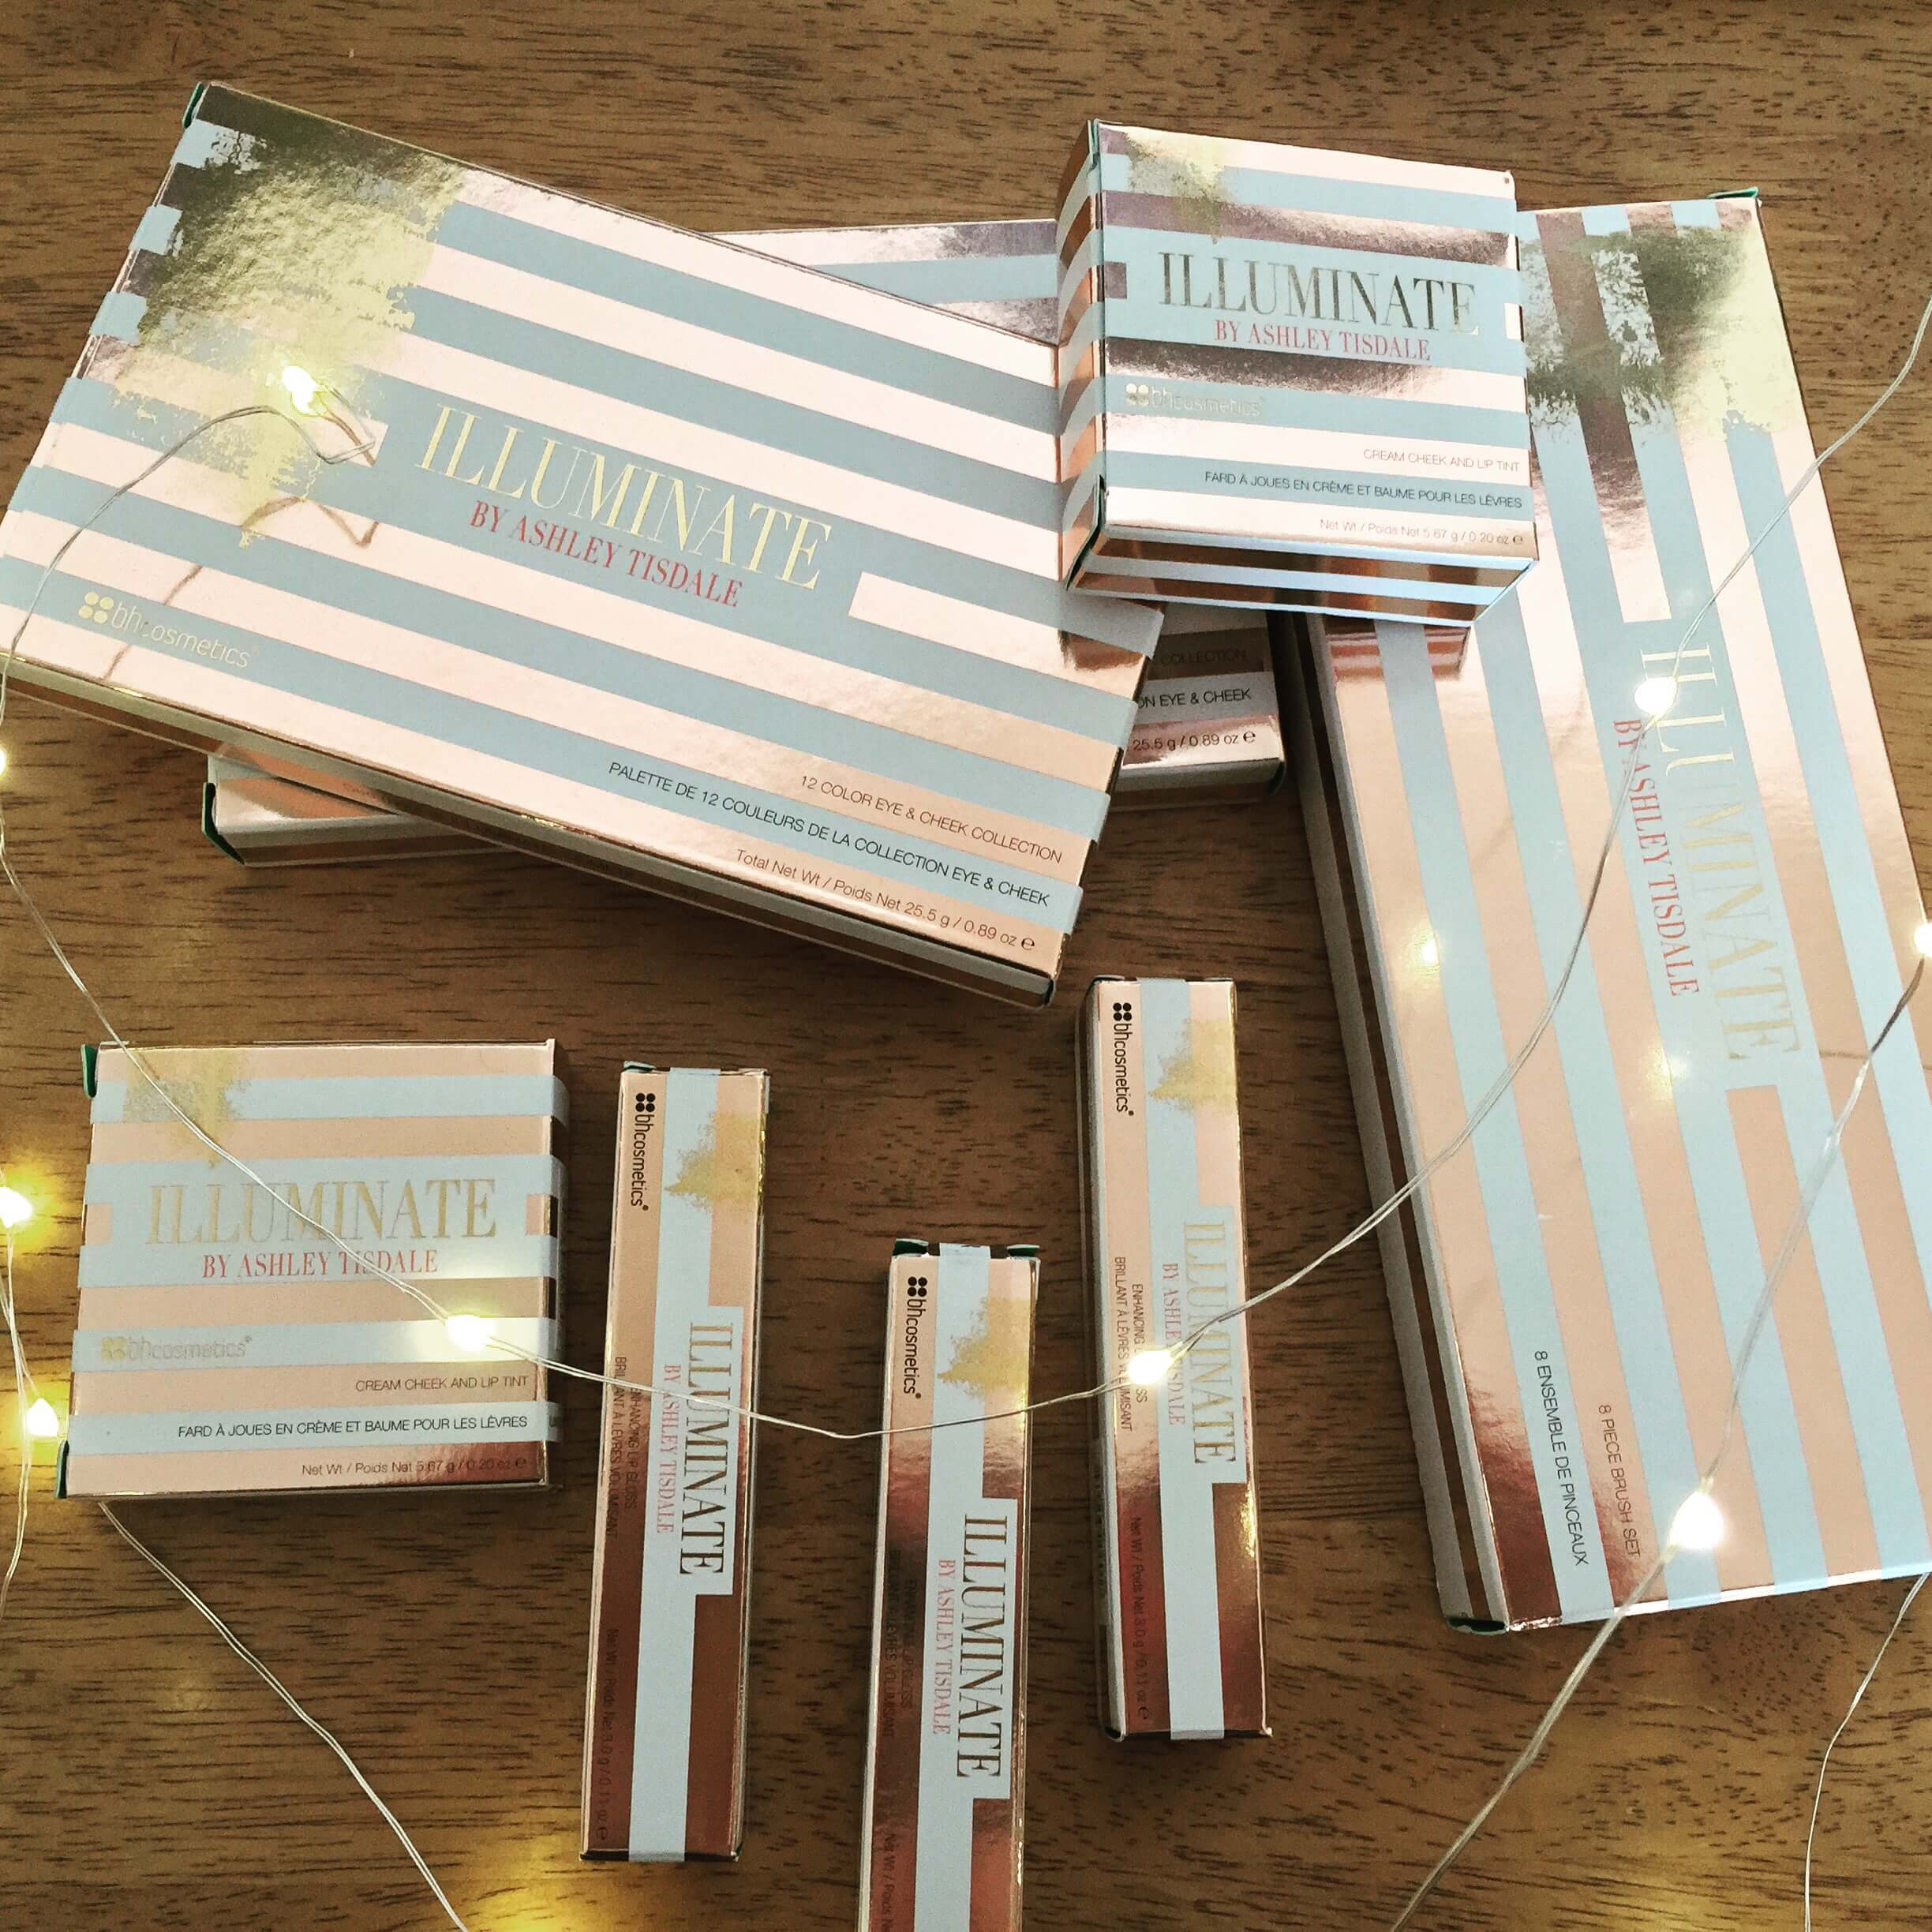 Illuminate By Ashley Tisdale BH Cosmetics Packaging